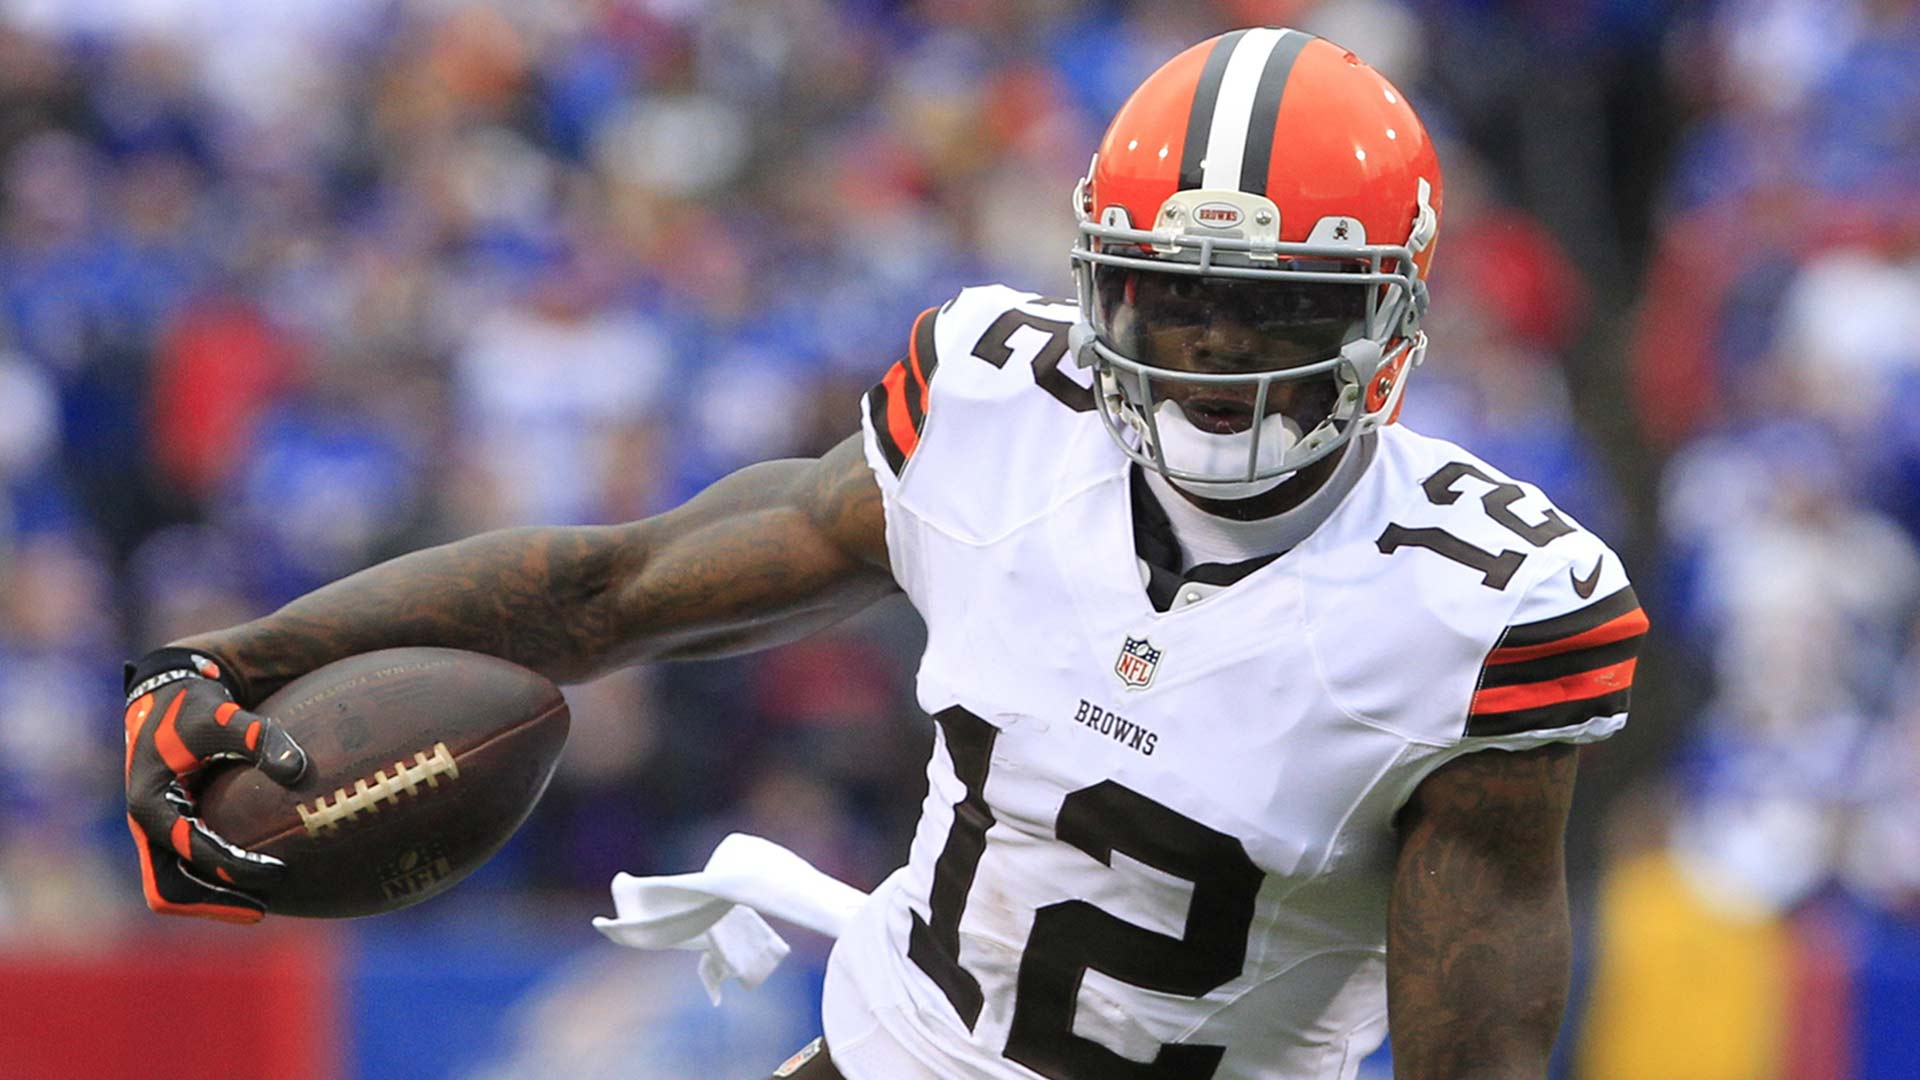 Cleveland Browns, 2012-2014<br> &raquo; Logged 161 receptions, 2,754 receiving yards and 14 receiving touchdowns<br> &raquo; Led the NFL in receiving yards in 2013 with 1,646 despite missing the first two games due to suspension<br> &raquo; Only player ever to record back-to-back games with 200-plus receiving yards (Recorded 498 receiving yards in Week 12 and Week 13 of the 2013 season)<br> &raquo; Gordon?s latest bid for reinstatement to the NFL was denied don May 11, 2017